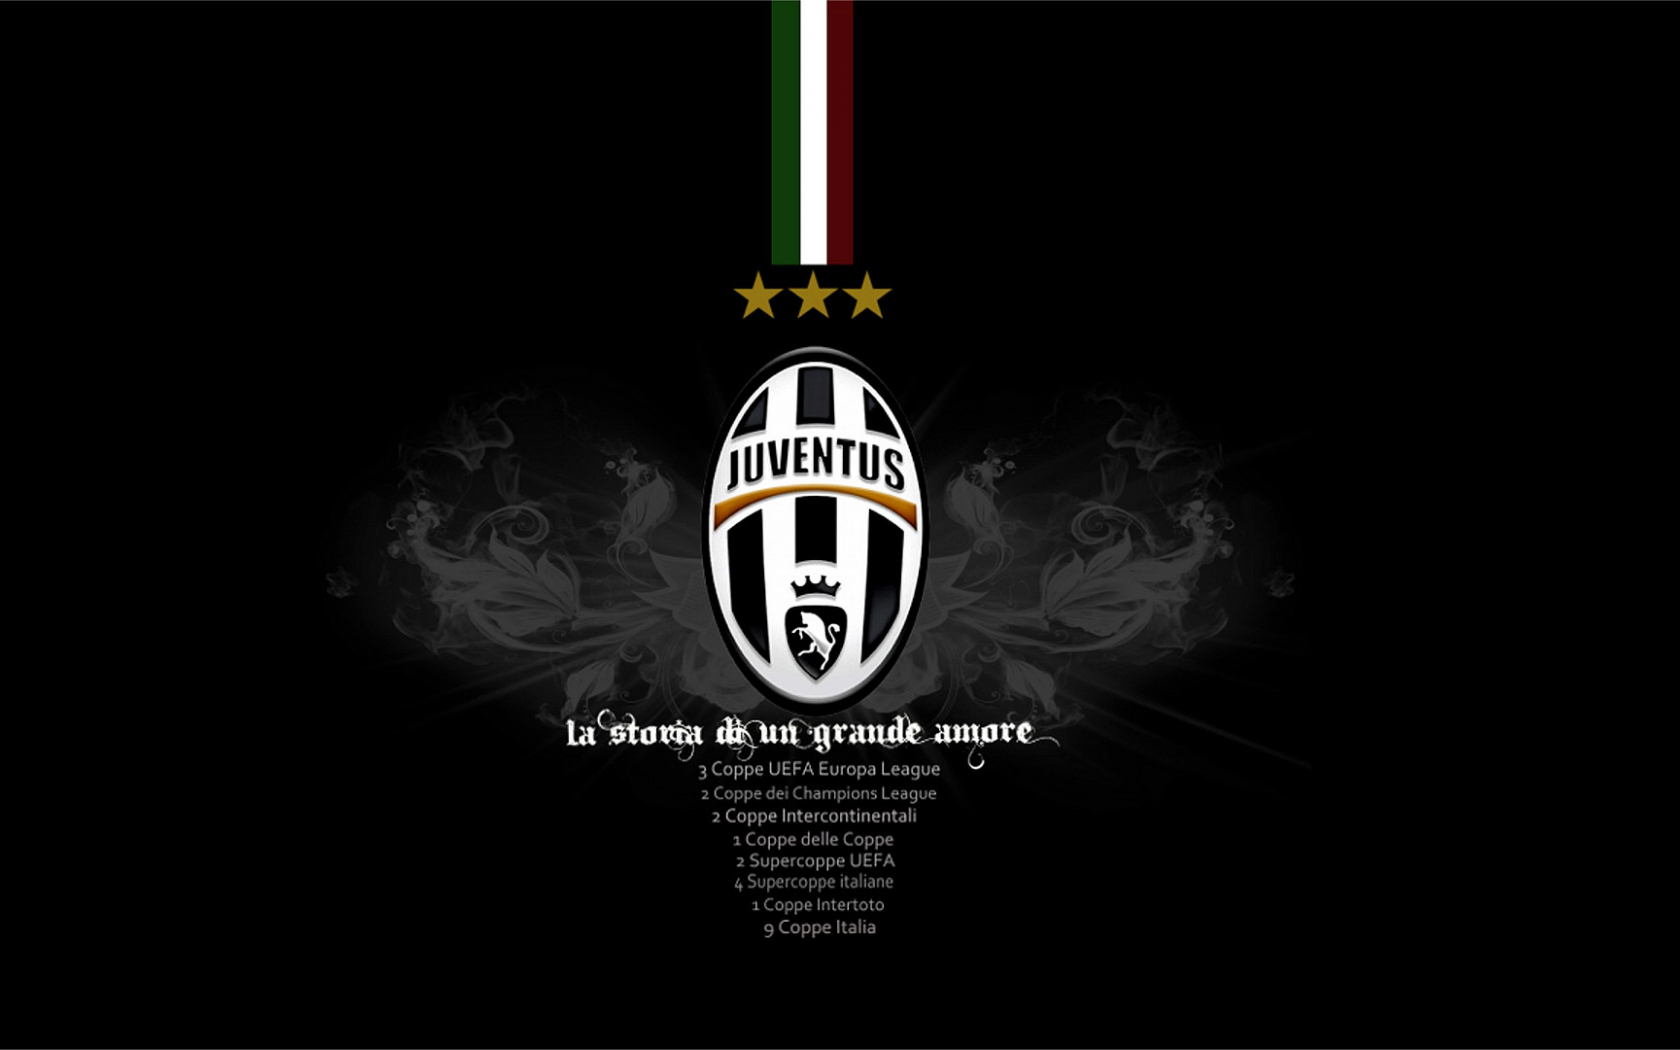 Free Download Juventus Black Minimalism Hd Wallpaper Top Hd Wallpaper Site 1920x1080 For Your Desktop Mobile Tablet Explore 50 Biggest Hd Wallpapers Site Wallpapers Sites Hd Free Wallpaper Sites